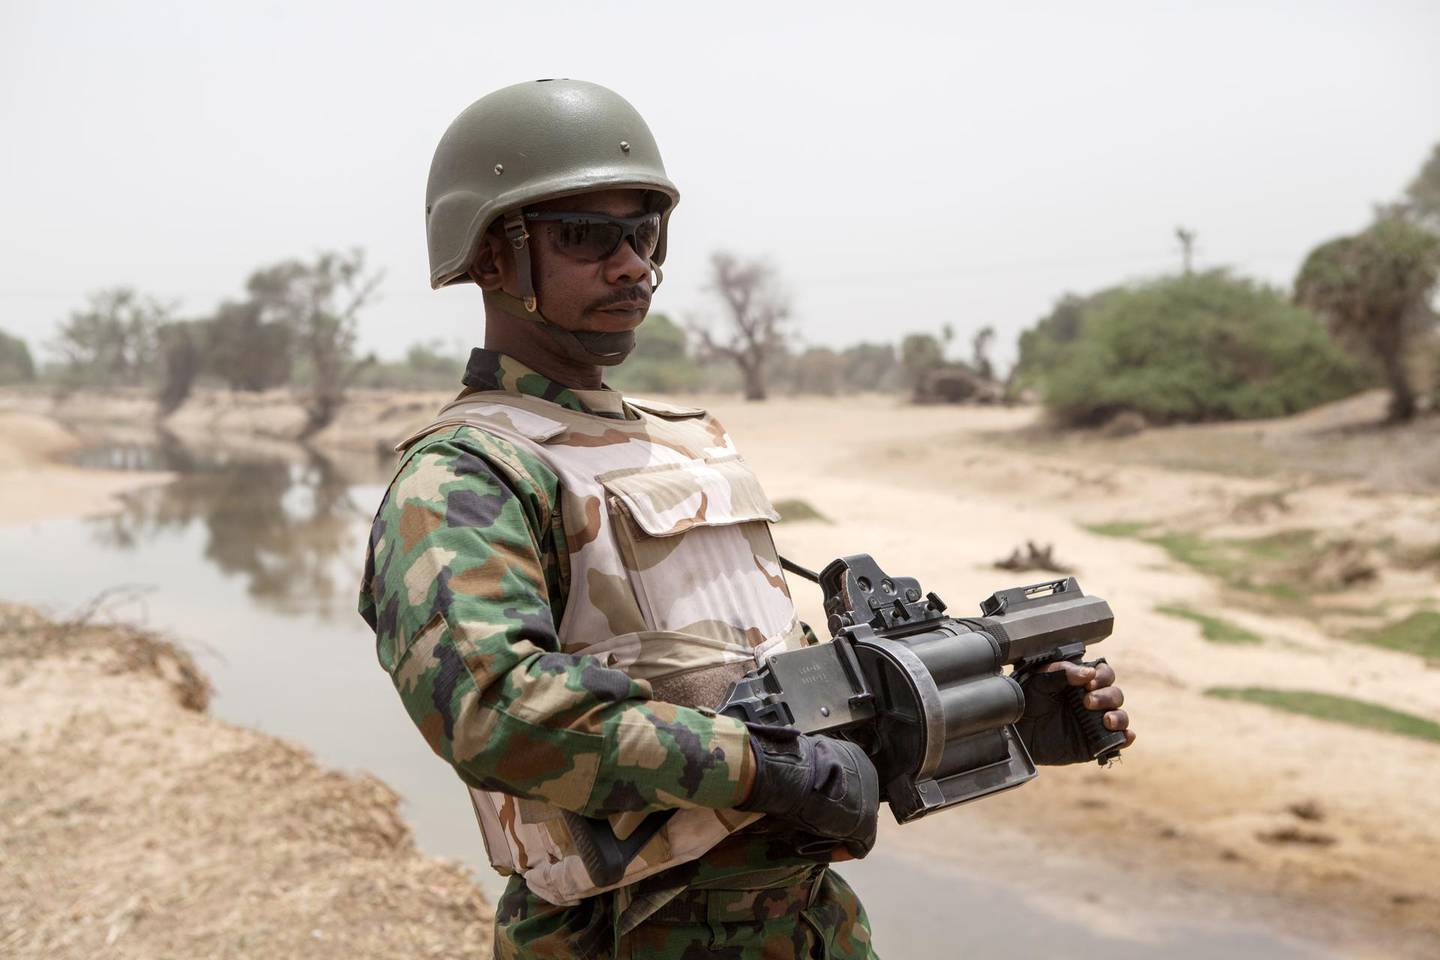 A Nigerian soldier, with a grenade launcher, stands guard near the Yobe river, that separates Nigeria from Niger, on the outskirt of the town of Damasak in North East Nigeria on April, 25 2017 as thousands of Nigerians, who were freed in 2016 by the Nigerian army from Boko Haram insurgents, are returning to their homes in Damasak. - Yagana Bukar's younger brothers Mohammed and Sadiq were among about 300 children kidnapped by Boko Haram from the town of Damasak in remote northeastern Nigeria nearly three years ago. But instead of the global outrage and social media campaign that followed a similar abduction of 219 schoolgirls from the town of Chibok, there were no protests for the children of Damasak. (Photo by Florian PLAUCHEUR / AFP)